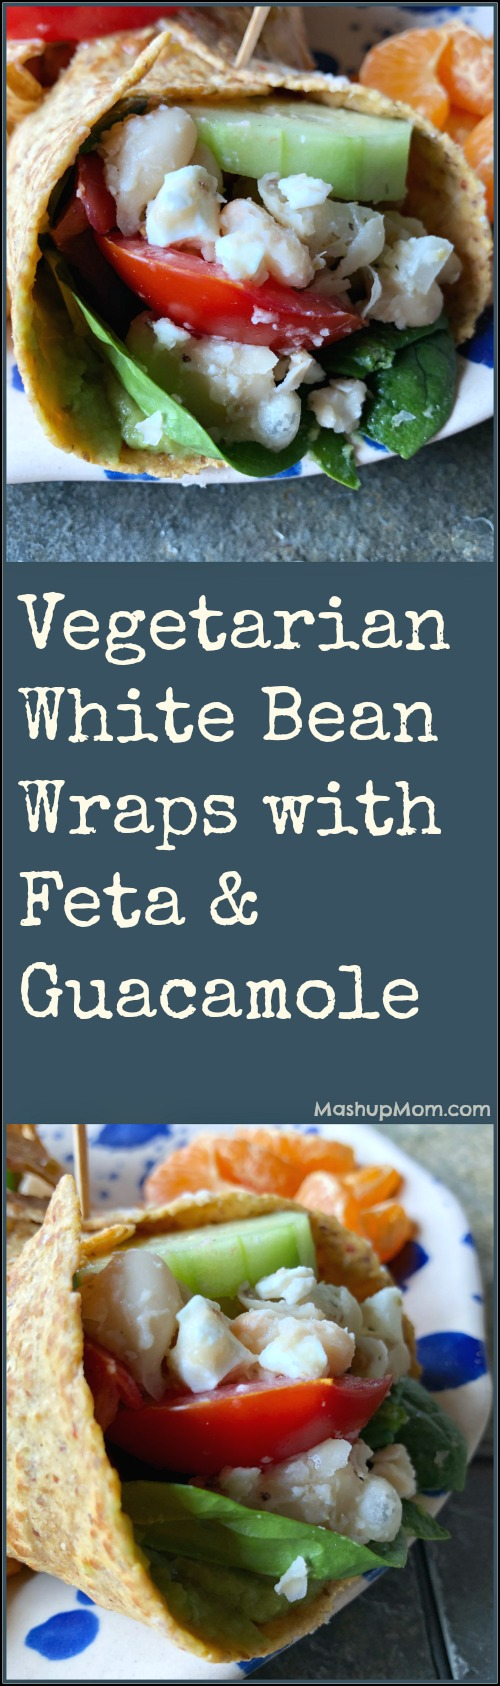 vegetarian white bean wraps with feta & guacamole